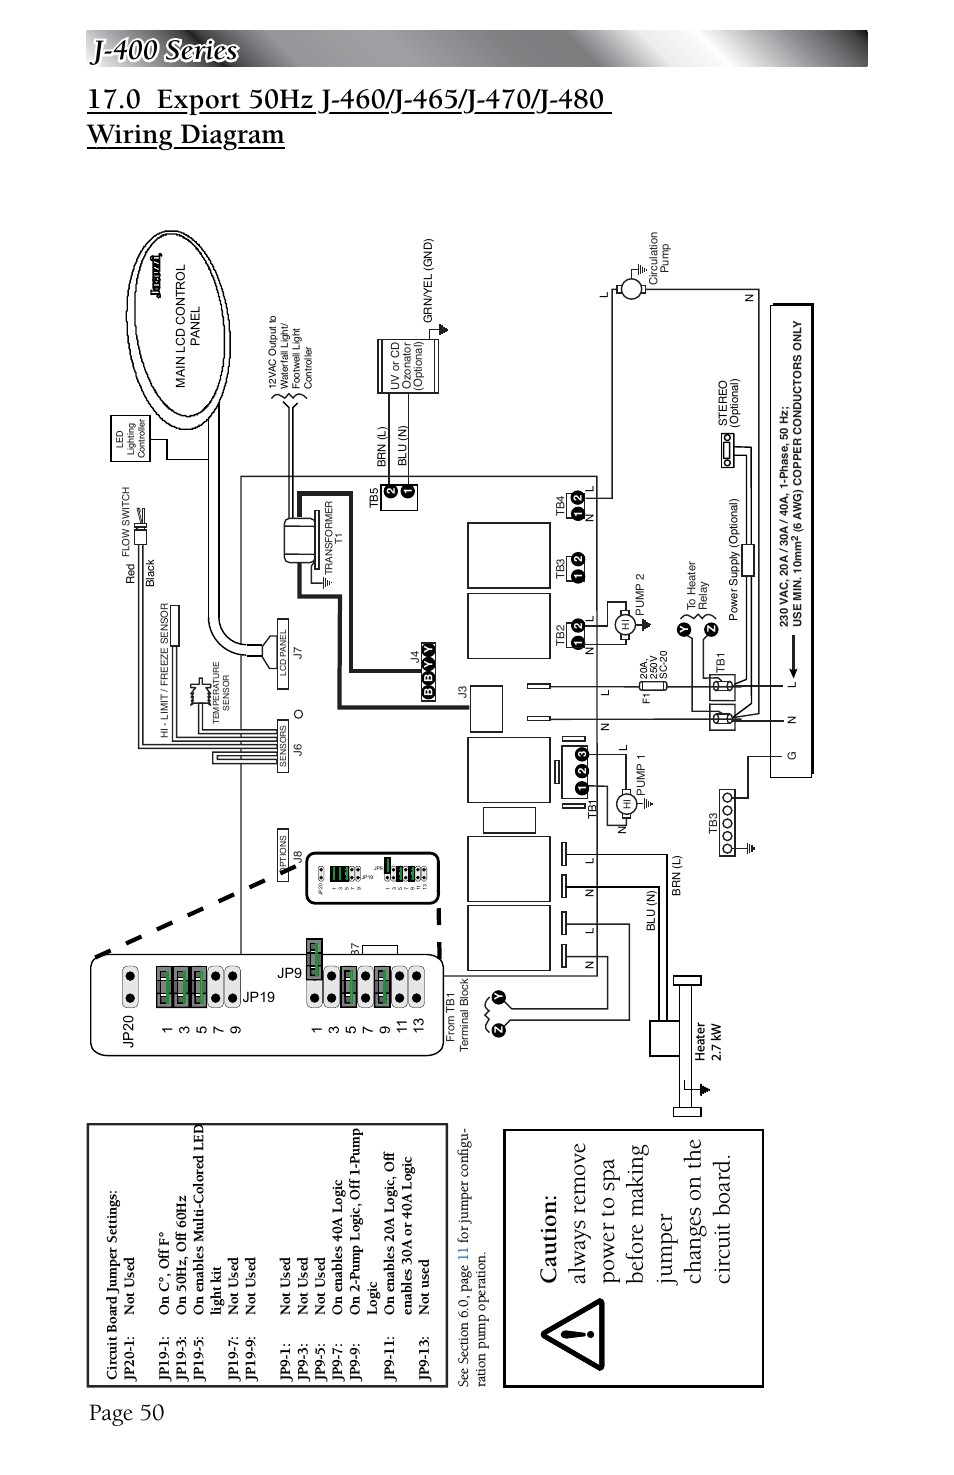 3hp-spa-pump-wiring-diagram-5  Wire Spa Wiring Diagram Pump on 3 phase wiring diagram, hayward wiring diagram, cal spa ps4 parts diagram, waterway spa pumps diagram, 1993 cal spa plumbing diagram, heater wiring diagram, pool wiring diagram, hot tub wiring diagram, leeson wiring diagram, spa wiring schematic, spa pump motor diagram, motor wiring diagram, marquis spa parts diagram, 230v single phase wiring diagram, spa heater wiring, fasco wiring diagram, spa plumbing diagram 2 pumps, spa pump parts diagram, electrical schematic wiring diagram,